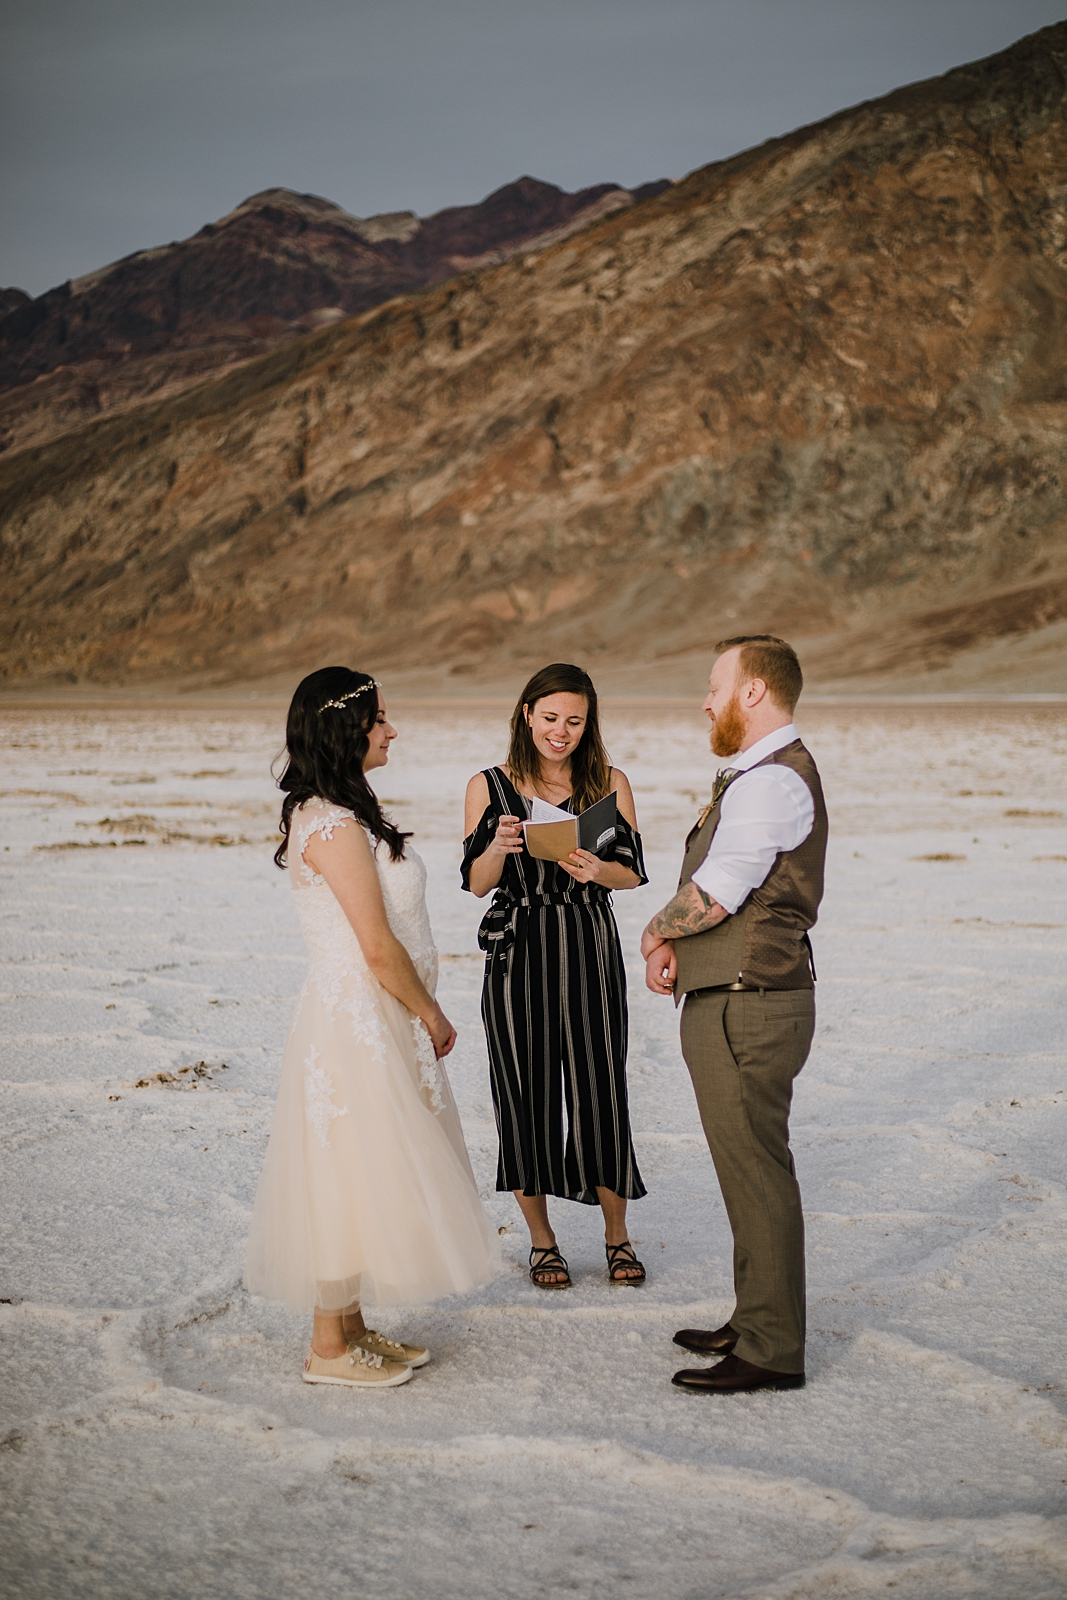 couple eloping on salt flats, death valley national park elopement, elope in death valley, badwater basin elopement, hiking in death valley national park, sunset at badwater basin